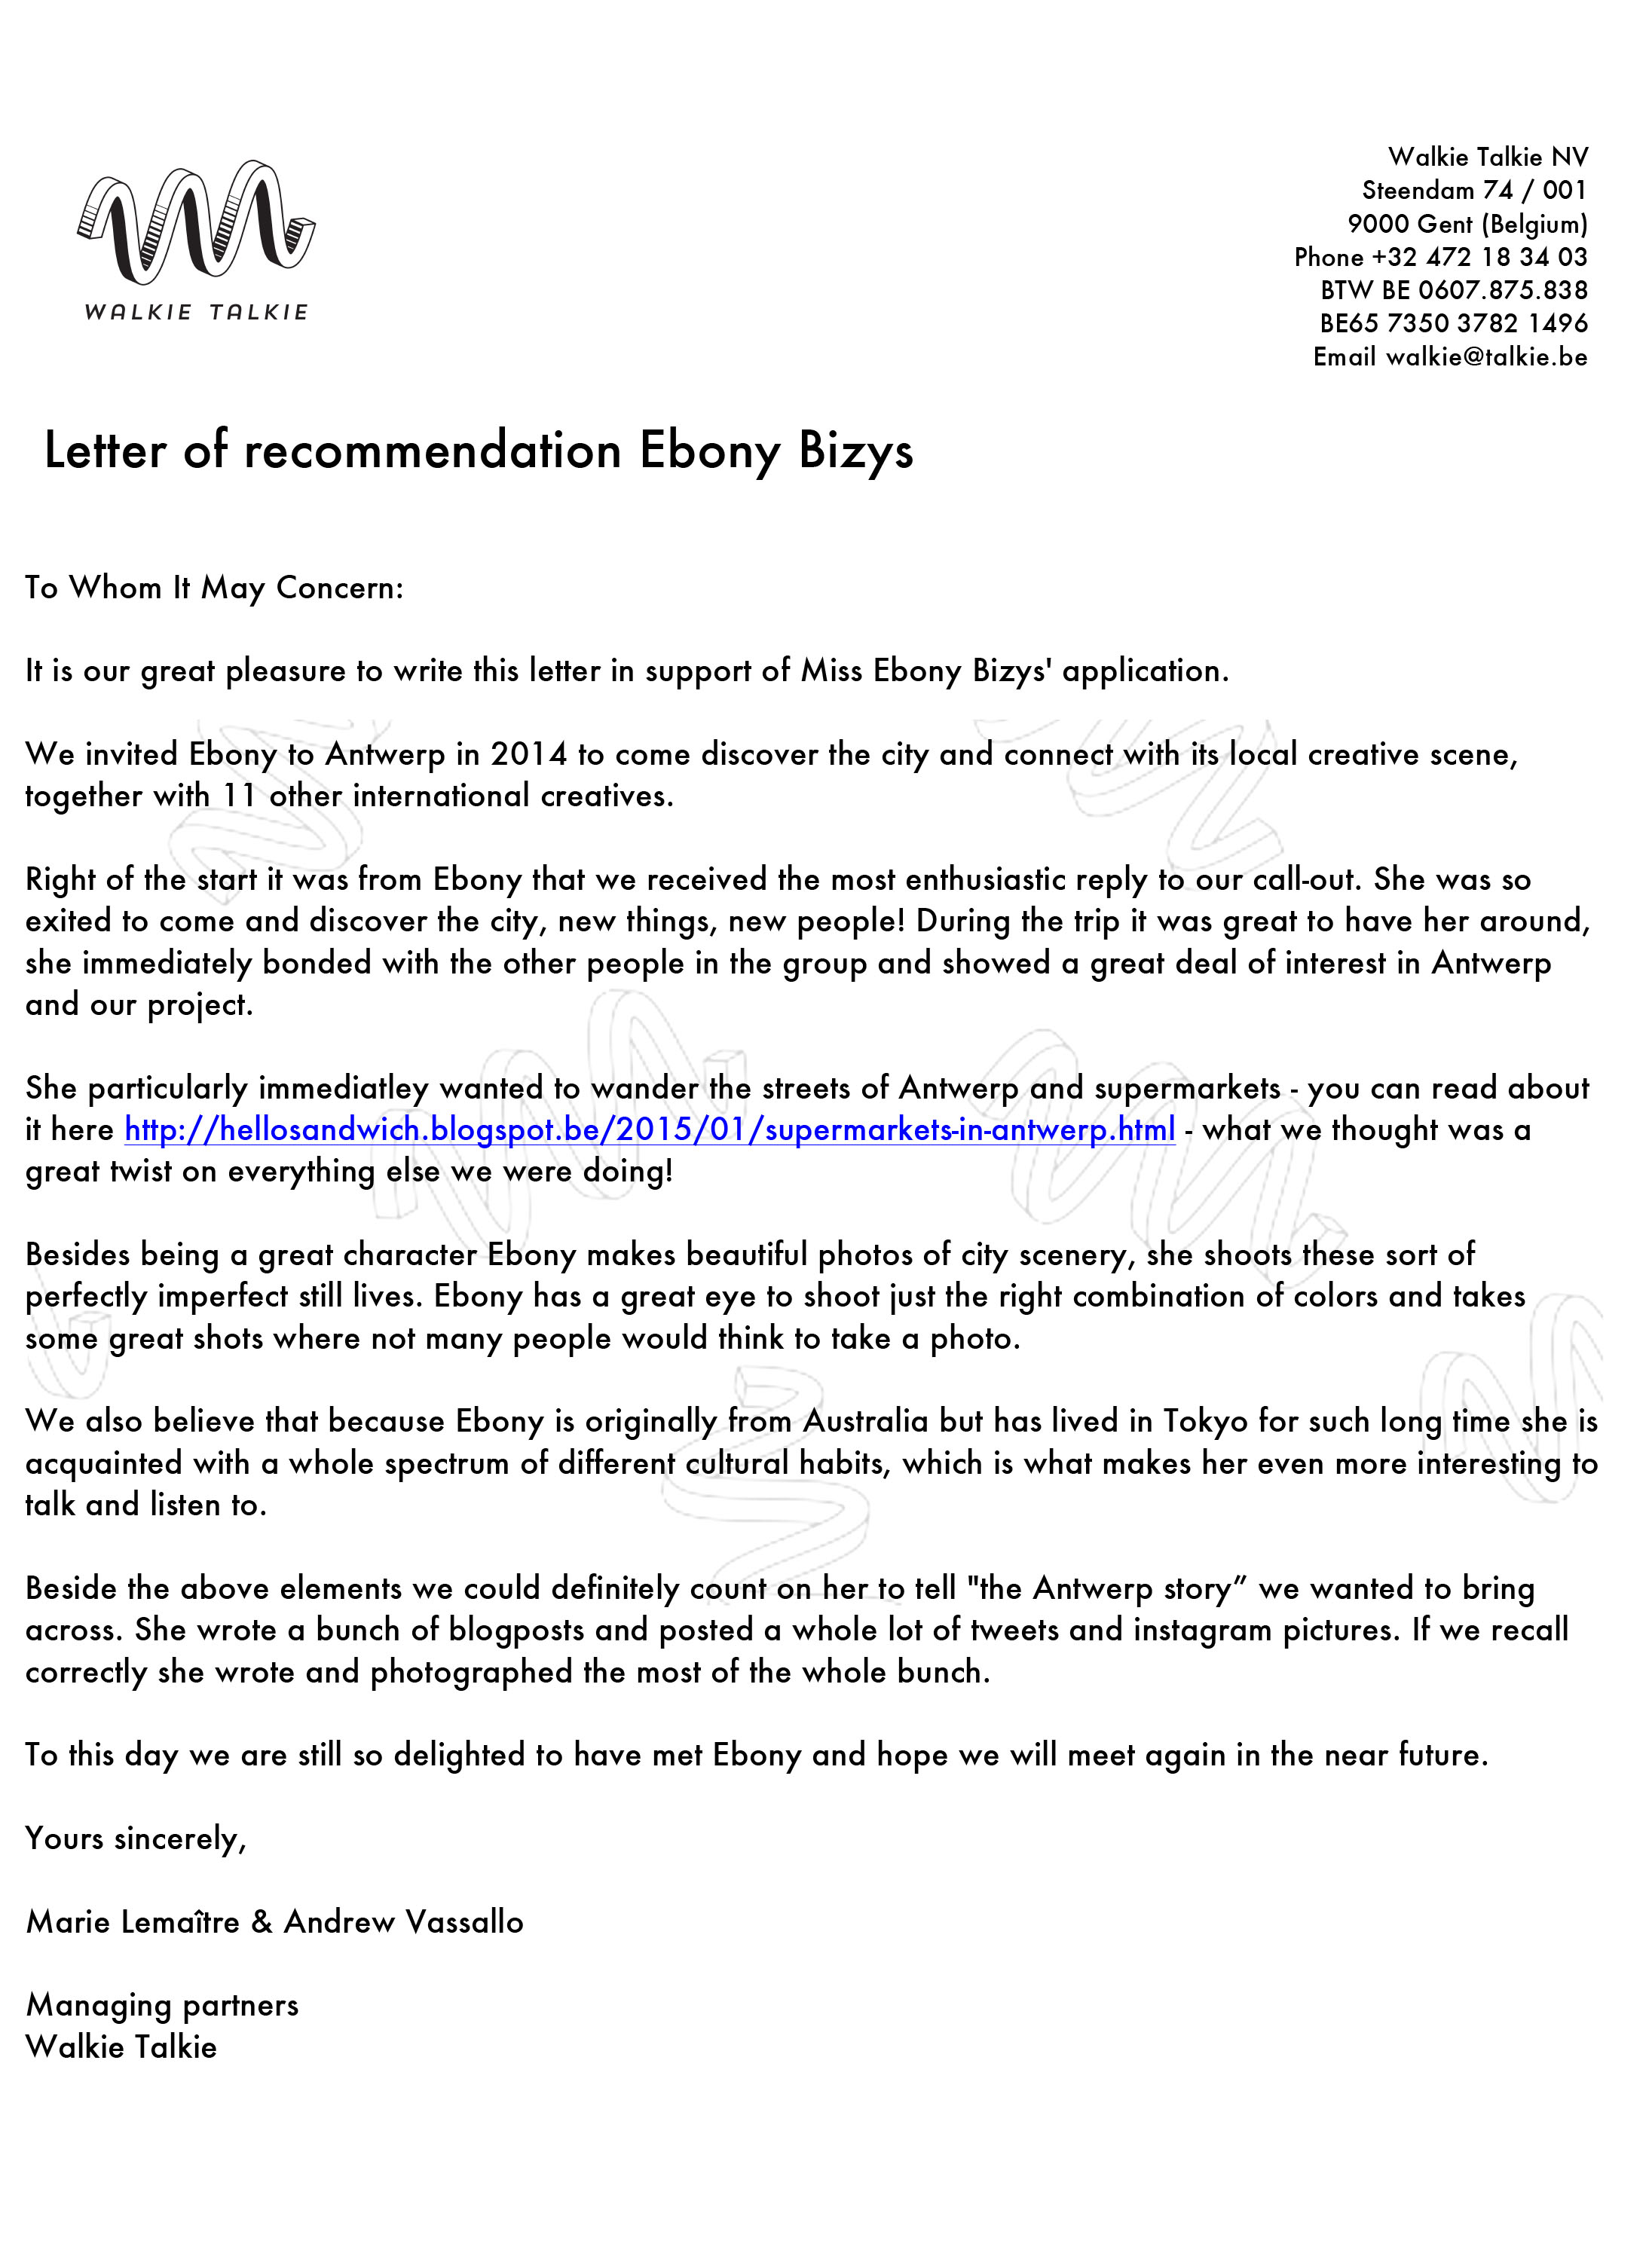 Letter of recommendation Ebony Bizys.jpg